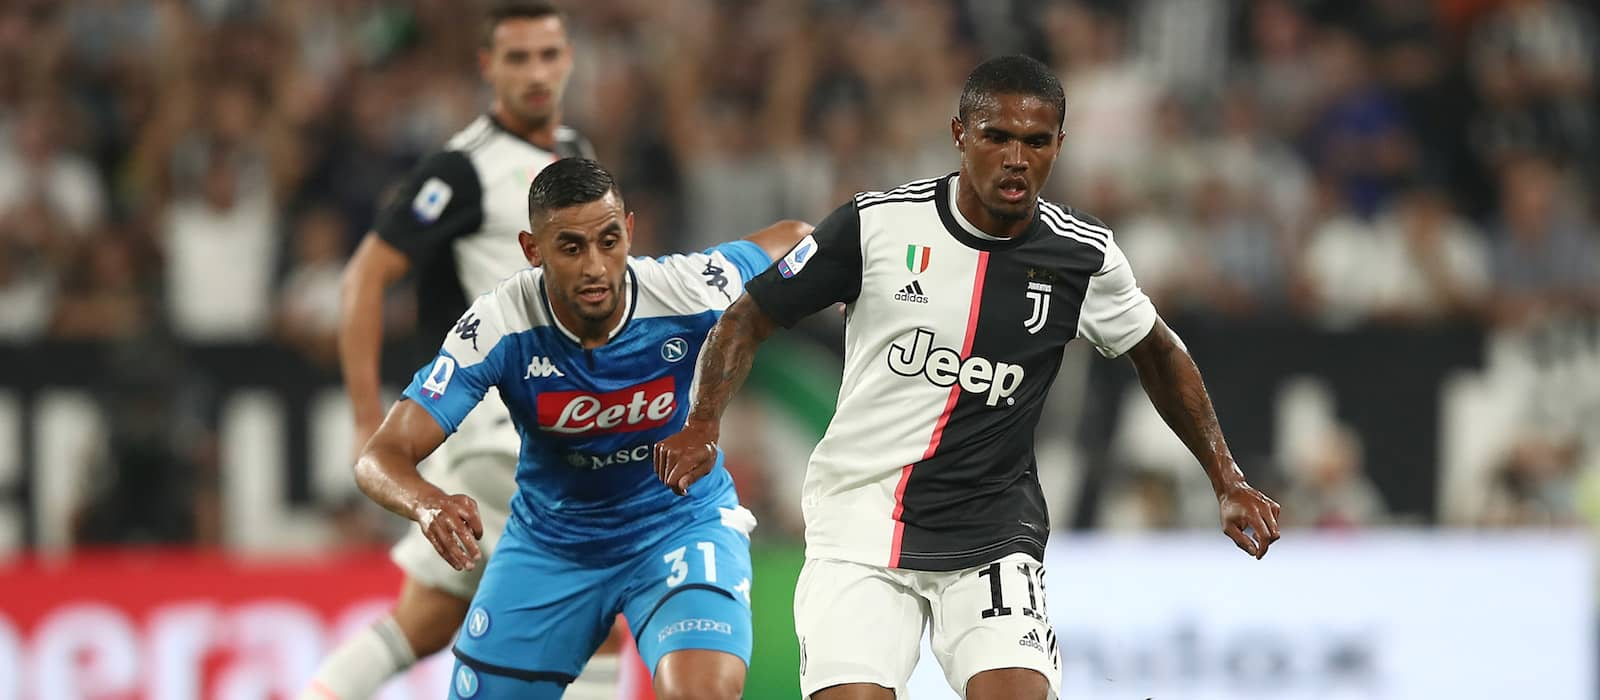 Manchester United bid for Douglas Costa in search for attacking reinforcements